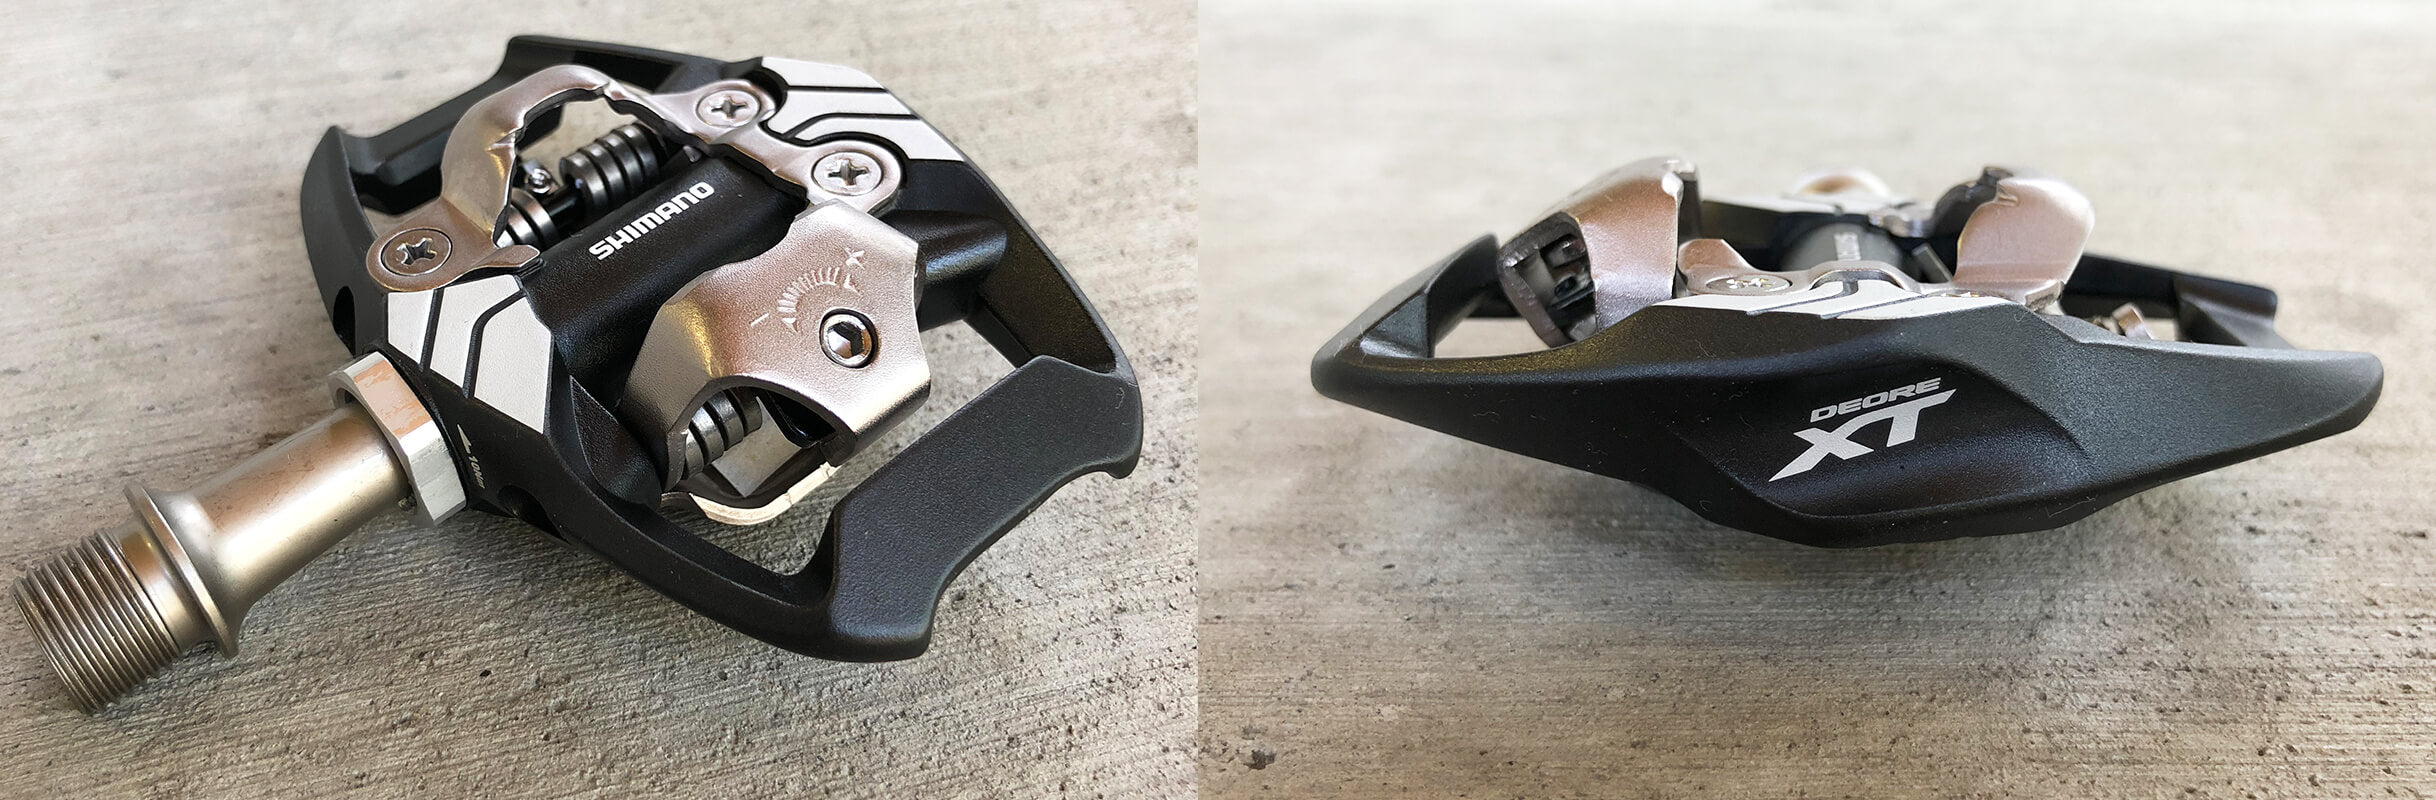 Shimano XT Trail Pedals